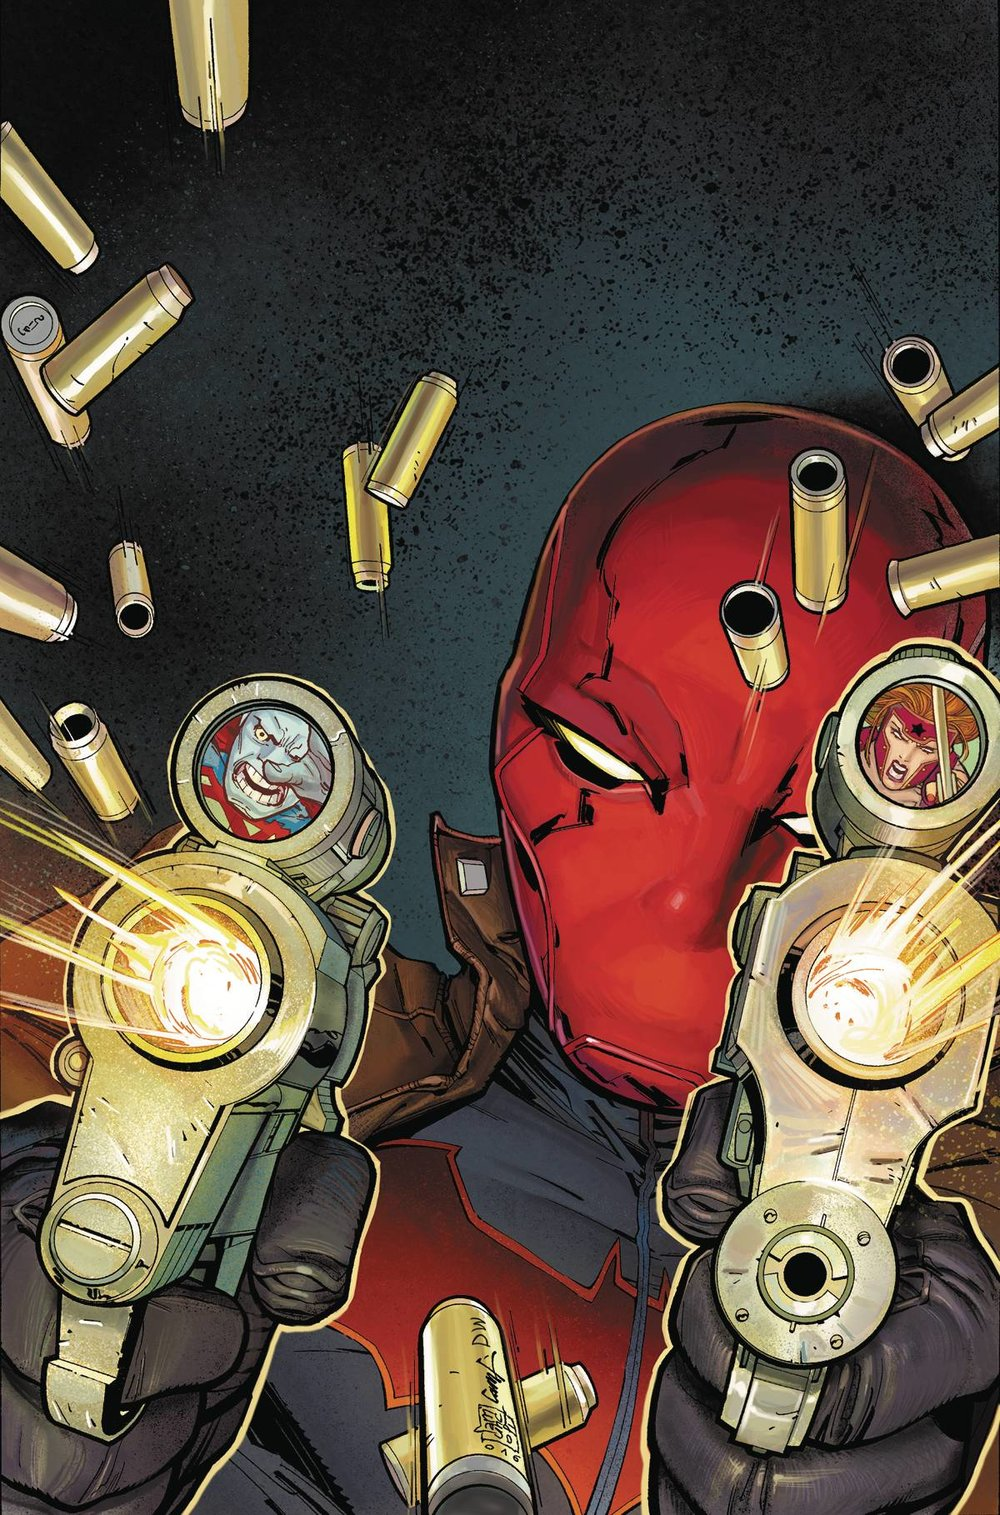 "Red Hood and the Outlaws TP Vol 1 (Rebirth) - Trish's PickWhat do you get when you cross a murderous former Robin, an Amazonian warrior, and a newly awakened Superman clone?  If your answer is ""I don't know, but that sounds crazy,"" you're right, but it totally works.  These three odd companions come together from vastly different circumstances and are forced together in a situation that builds an incredible bond between them forged from trust and instinct, each serving as a more chaotic counterpart to the famous DC Trinity.  Artemis and Red Hood develop a very sarcastic and competitive friendship, while Red Hood serves as an almost parental-type figure to the very confused and naive Bizarro.  At the same time, Red Hood is also attempting to rekindle his relationship with Batman.  As a self-proclaimed Jason Todd connoisseur, this is definitely my favorite Red Hood story told since Under the Red Hood.  However, both old and new fans will love this book, as each character's origin is retold in the first volume!"